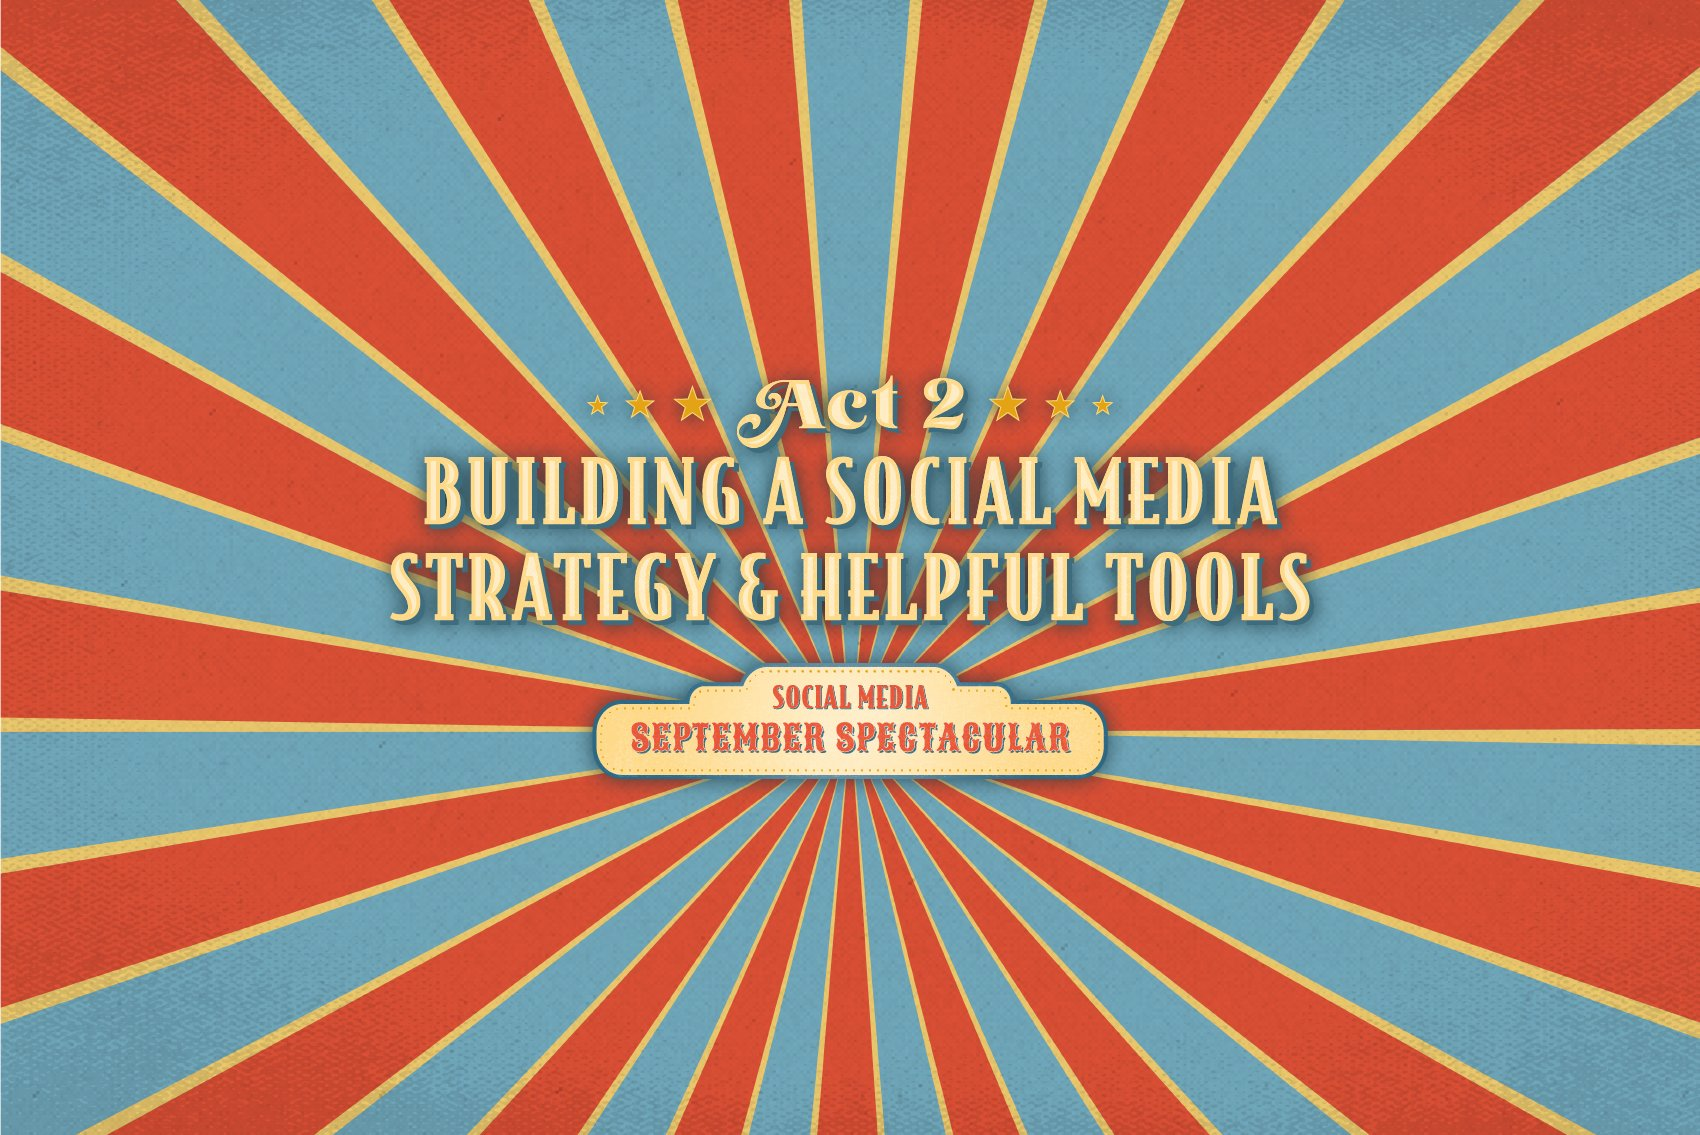 Act 2 Building a Social Media Strategy and Helpful Tools